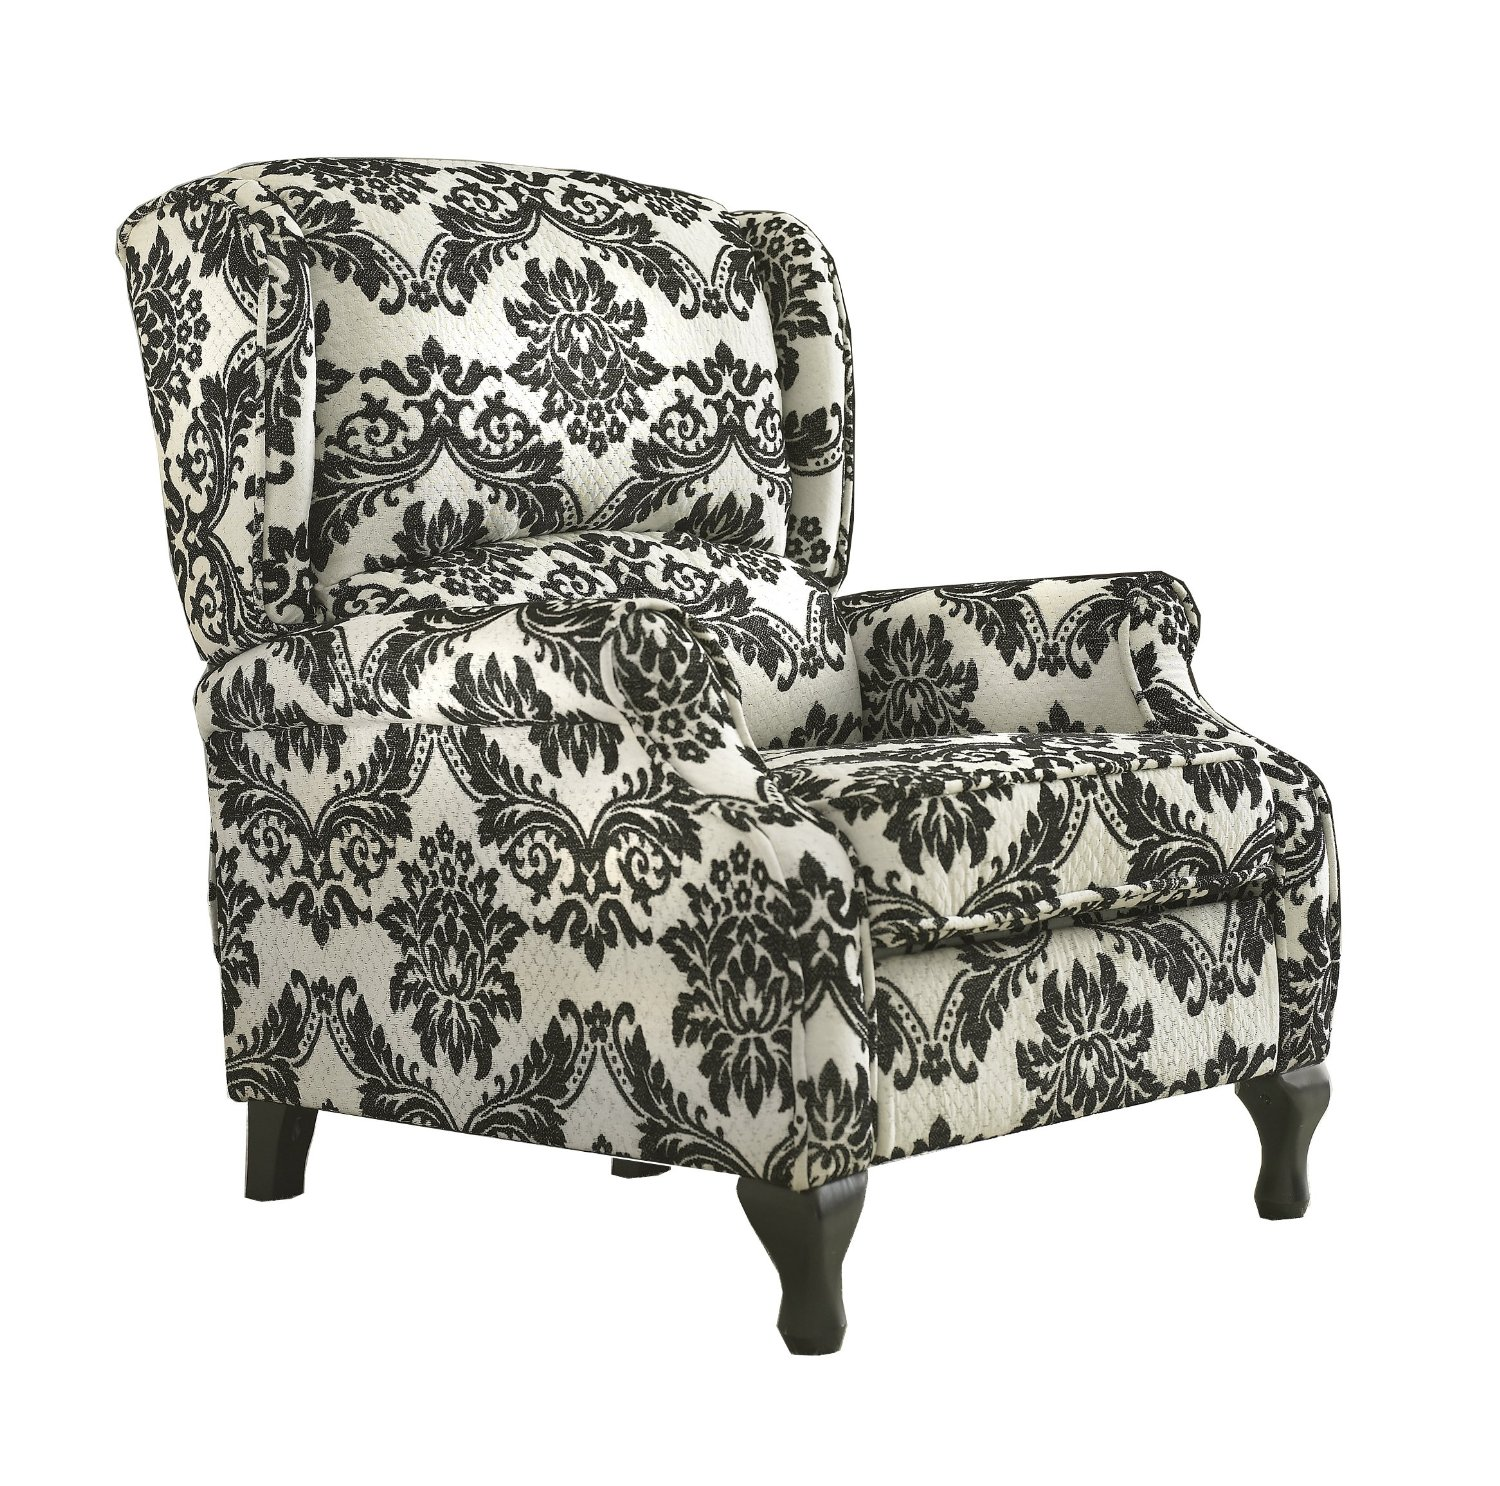 black and white paisley chair best desk for sciatica damask accent ideas homesfeed